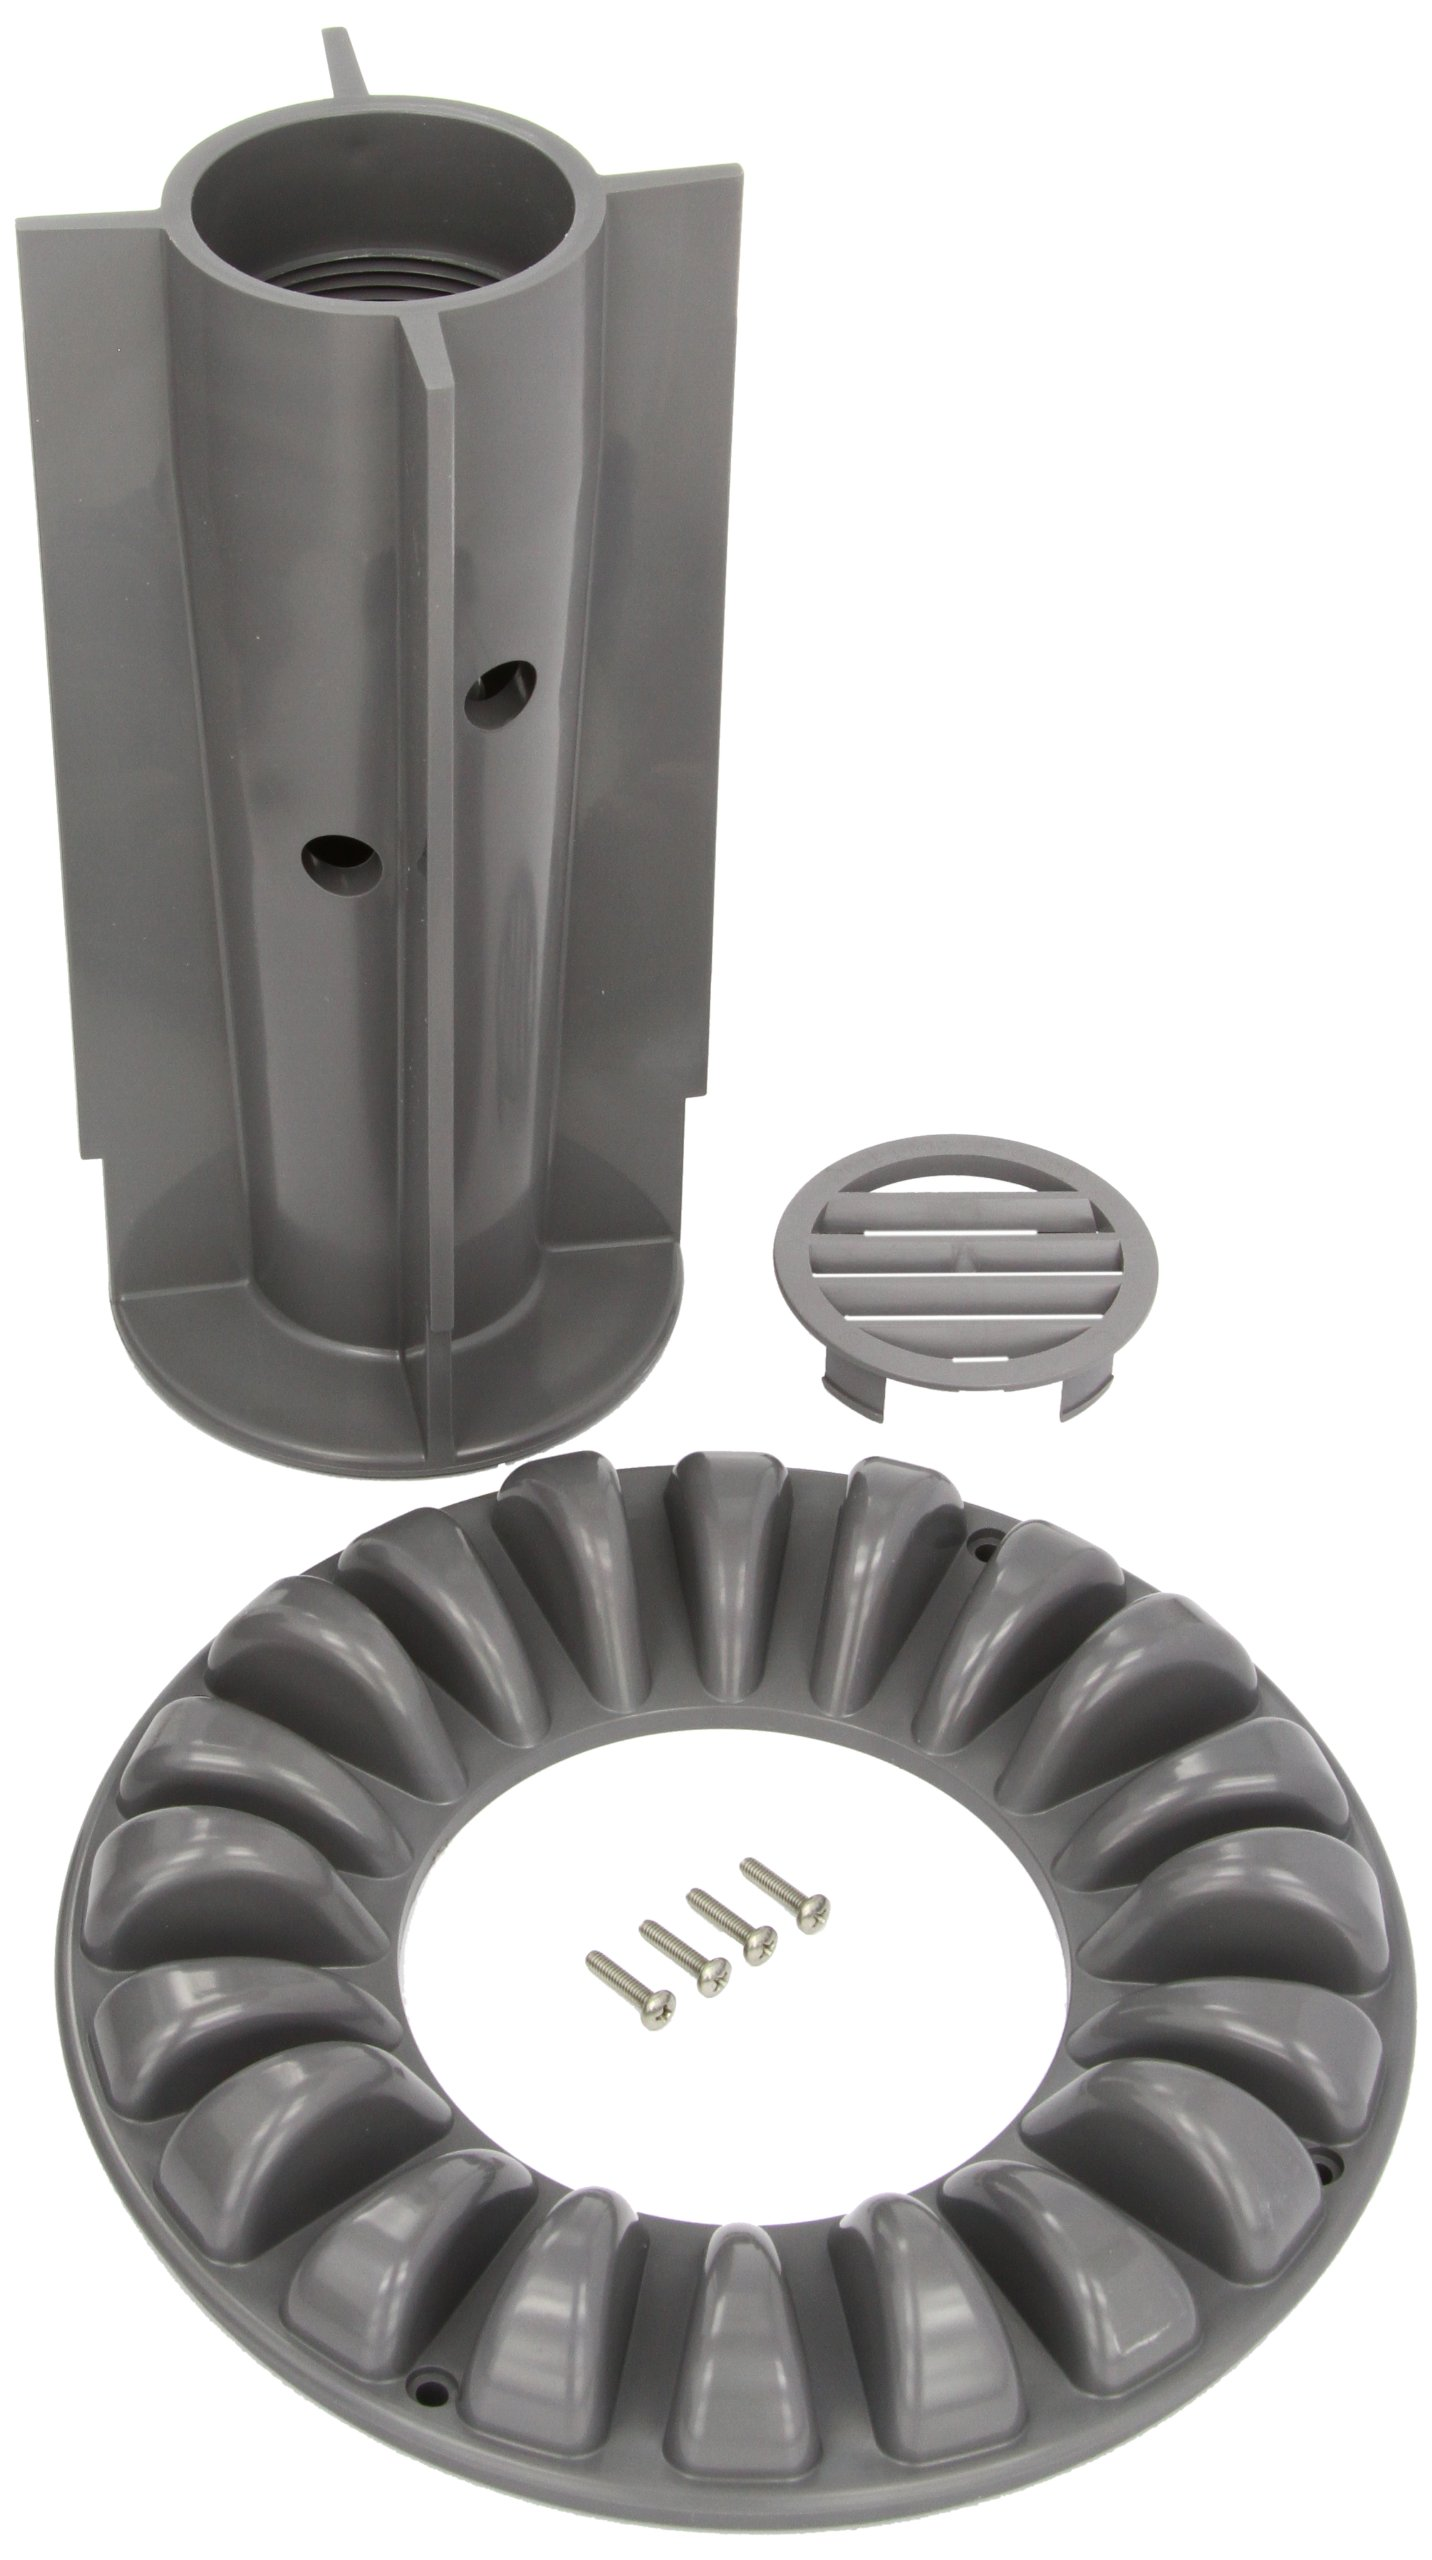 Zodiac 4-2-401 Light Gray Floor Canister Cover with Screws Replacement